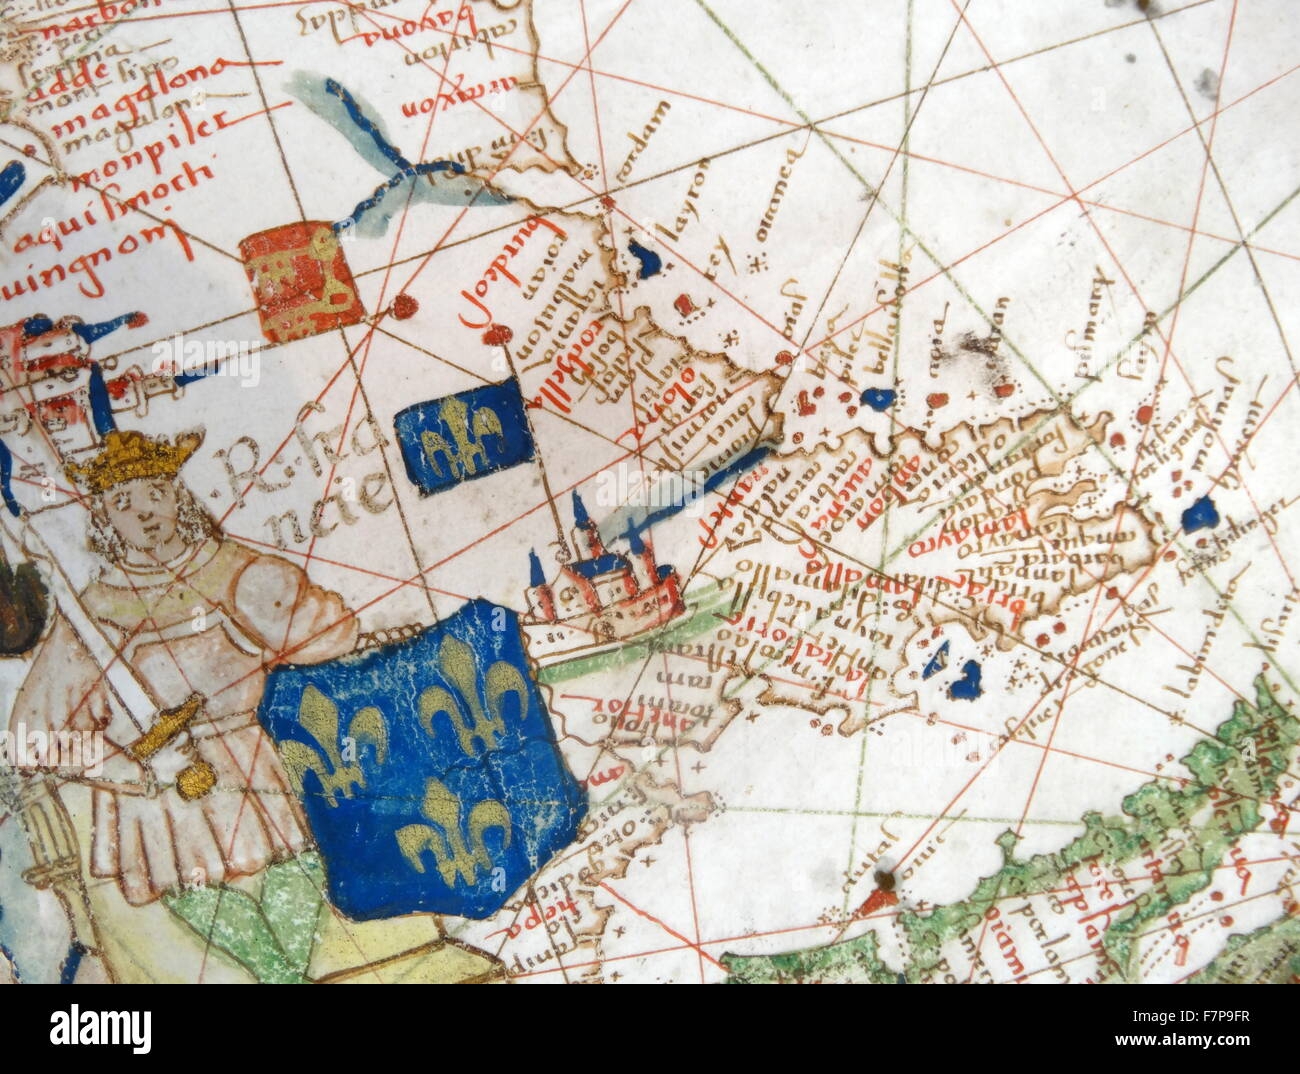 Renaissance map of Europe, Jacopo Russo, 1528, detail - Stock Image